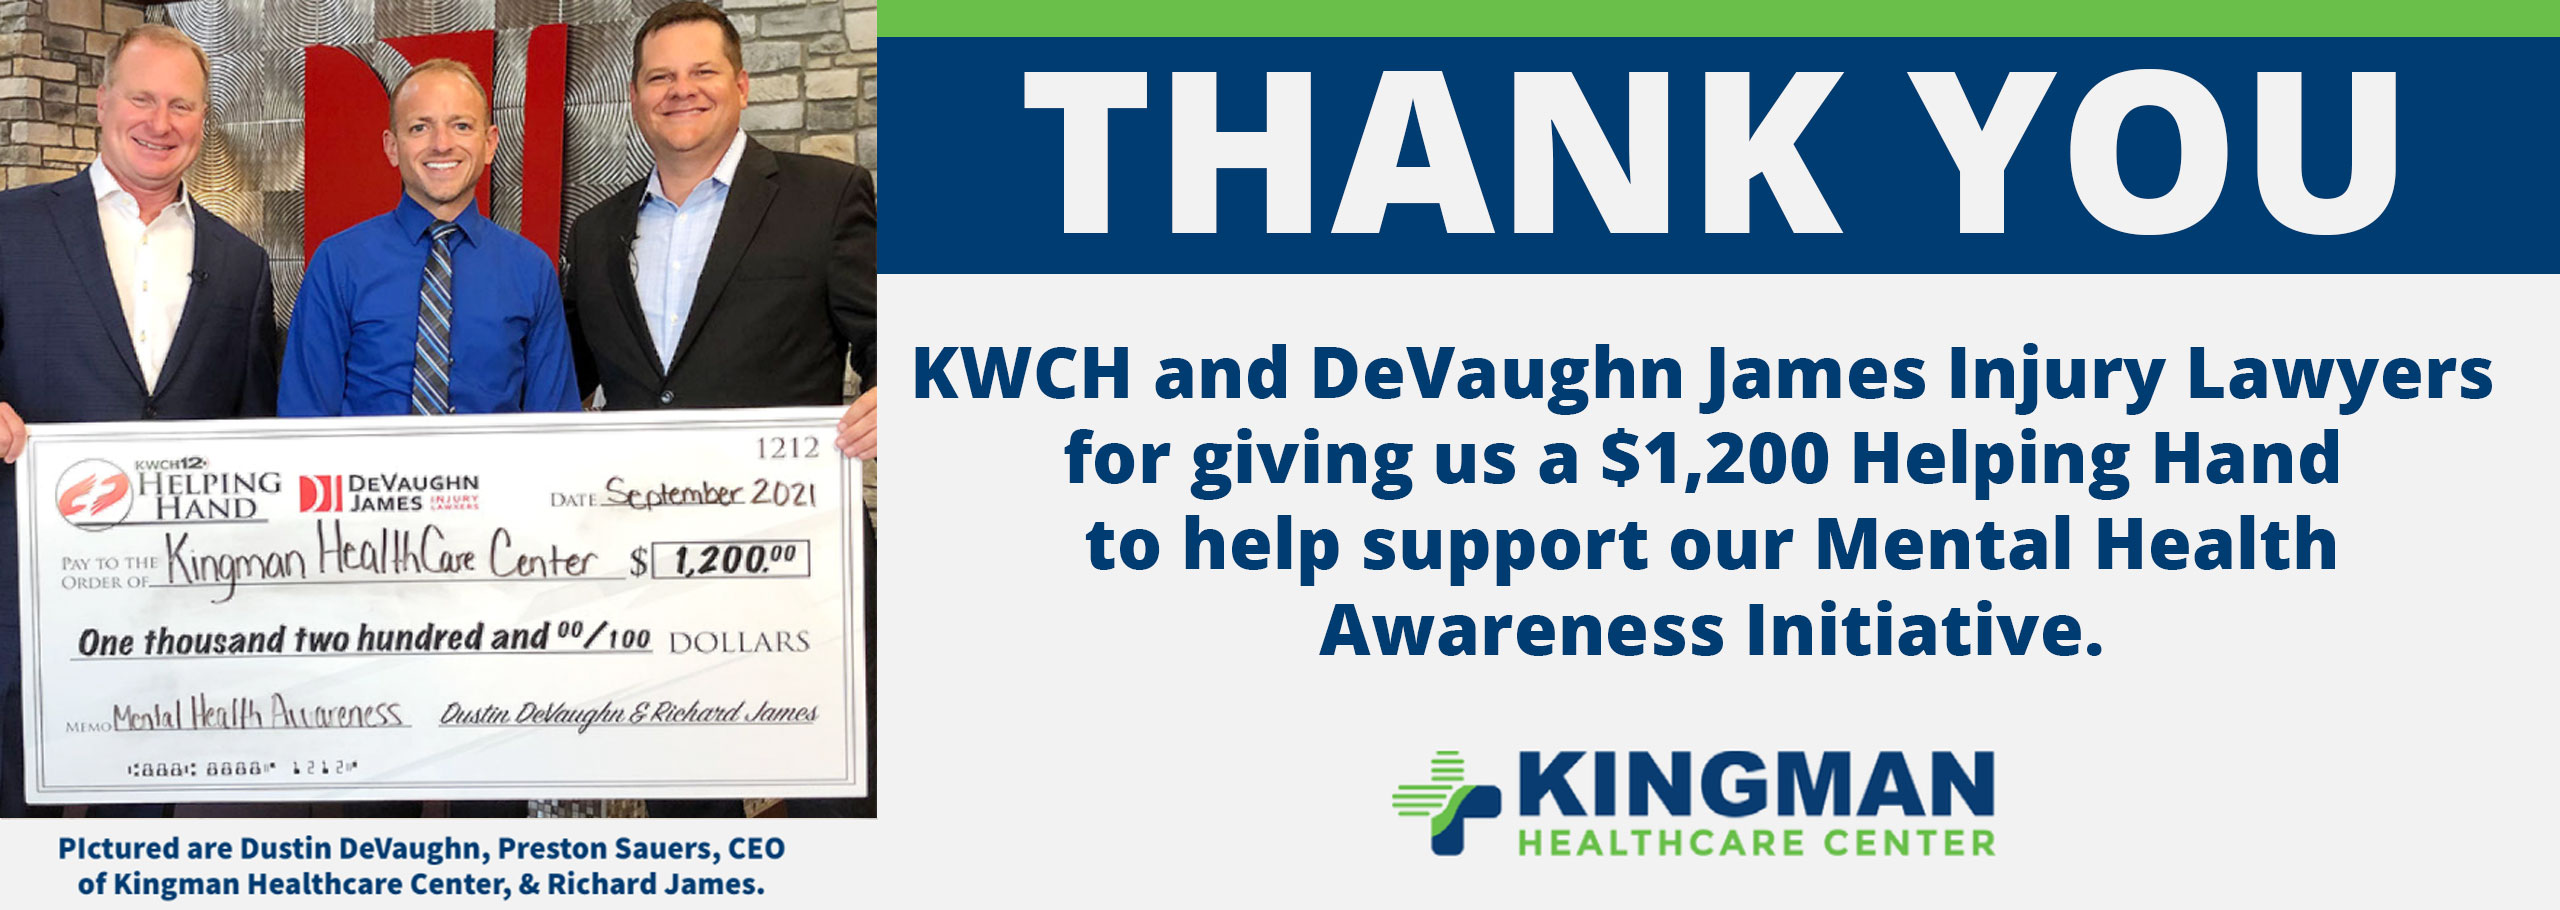 Thank you  KWCH and DeVaughn James Injury Lawyers  for giving us a $1,200 Helping Hand  to help support our Mental Health Awareness Initiative.